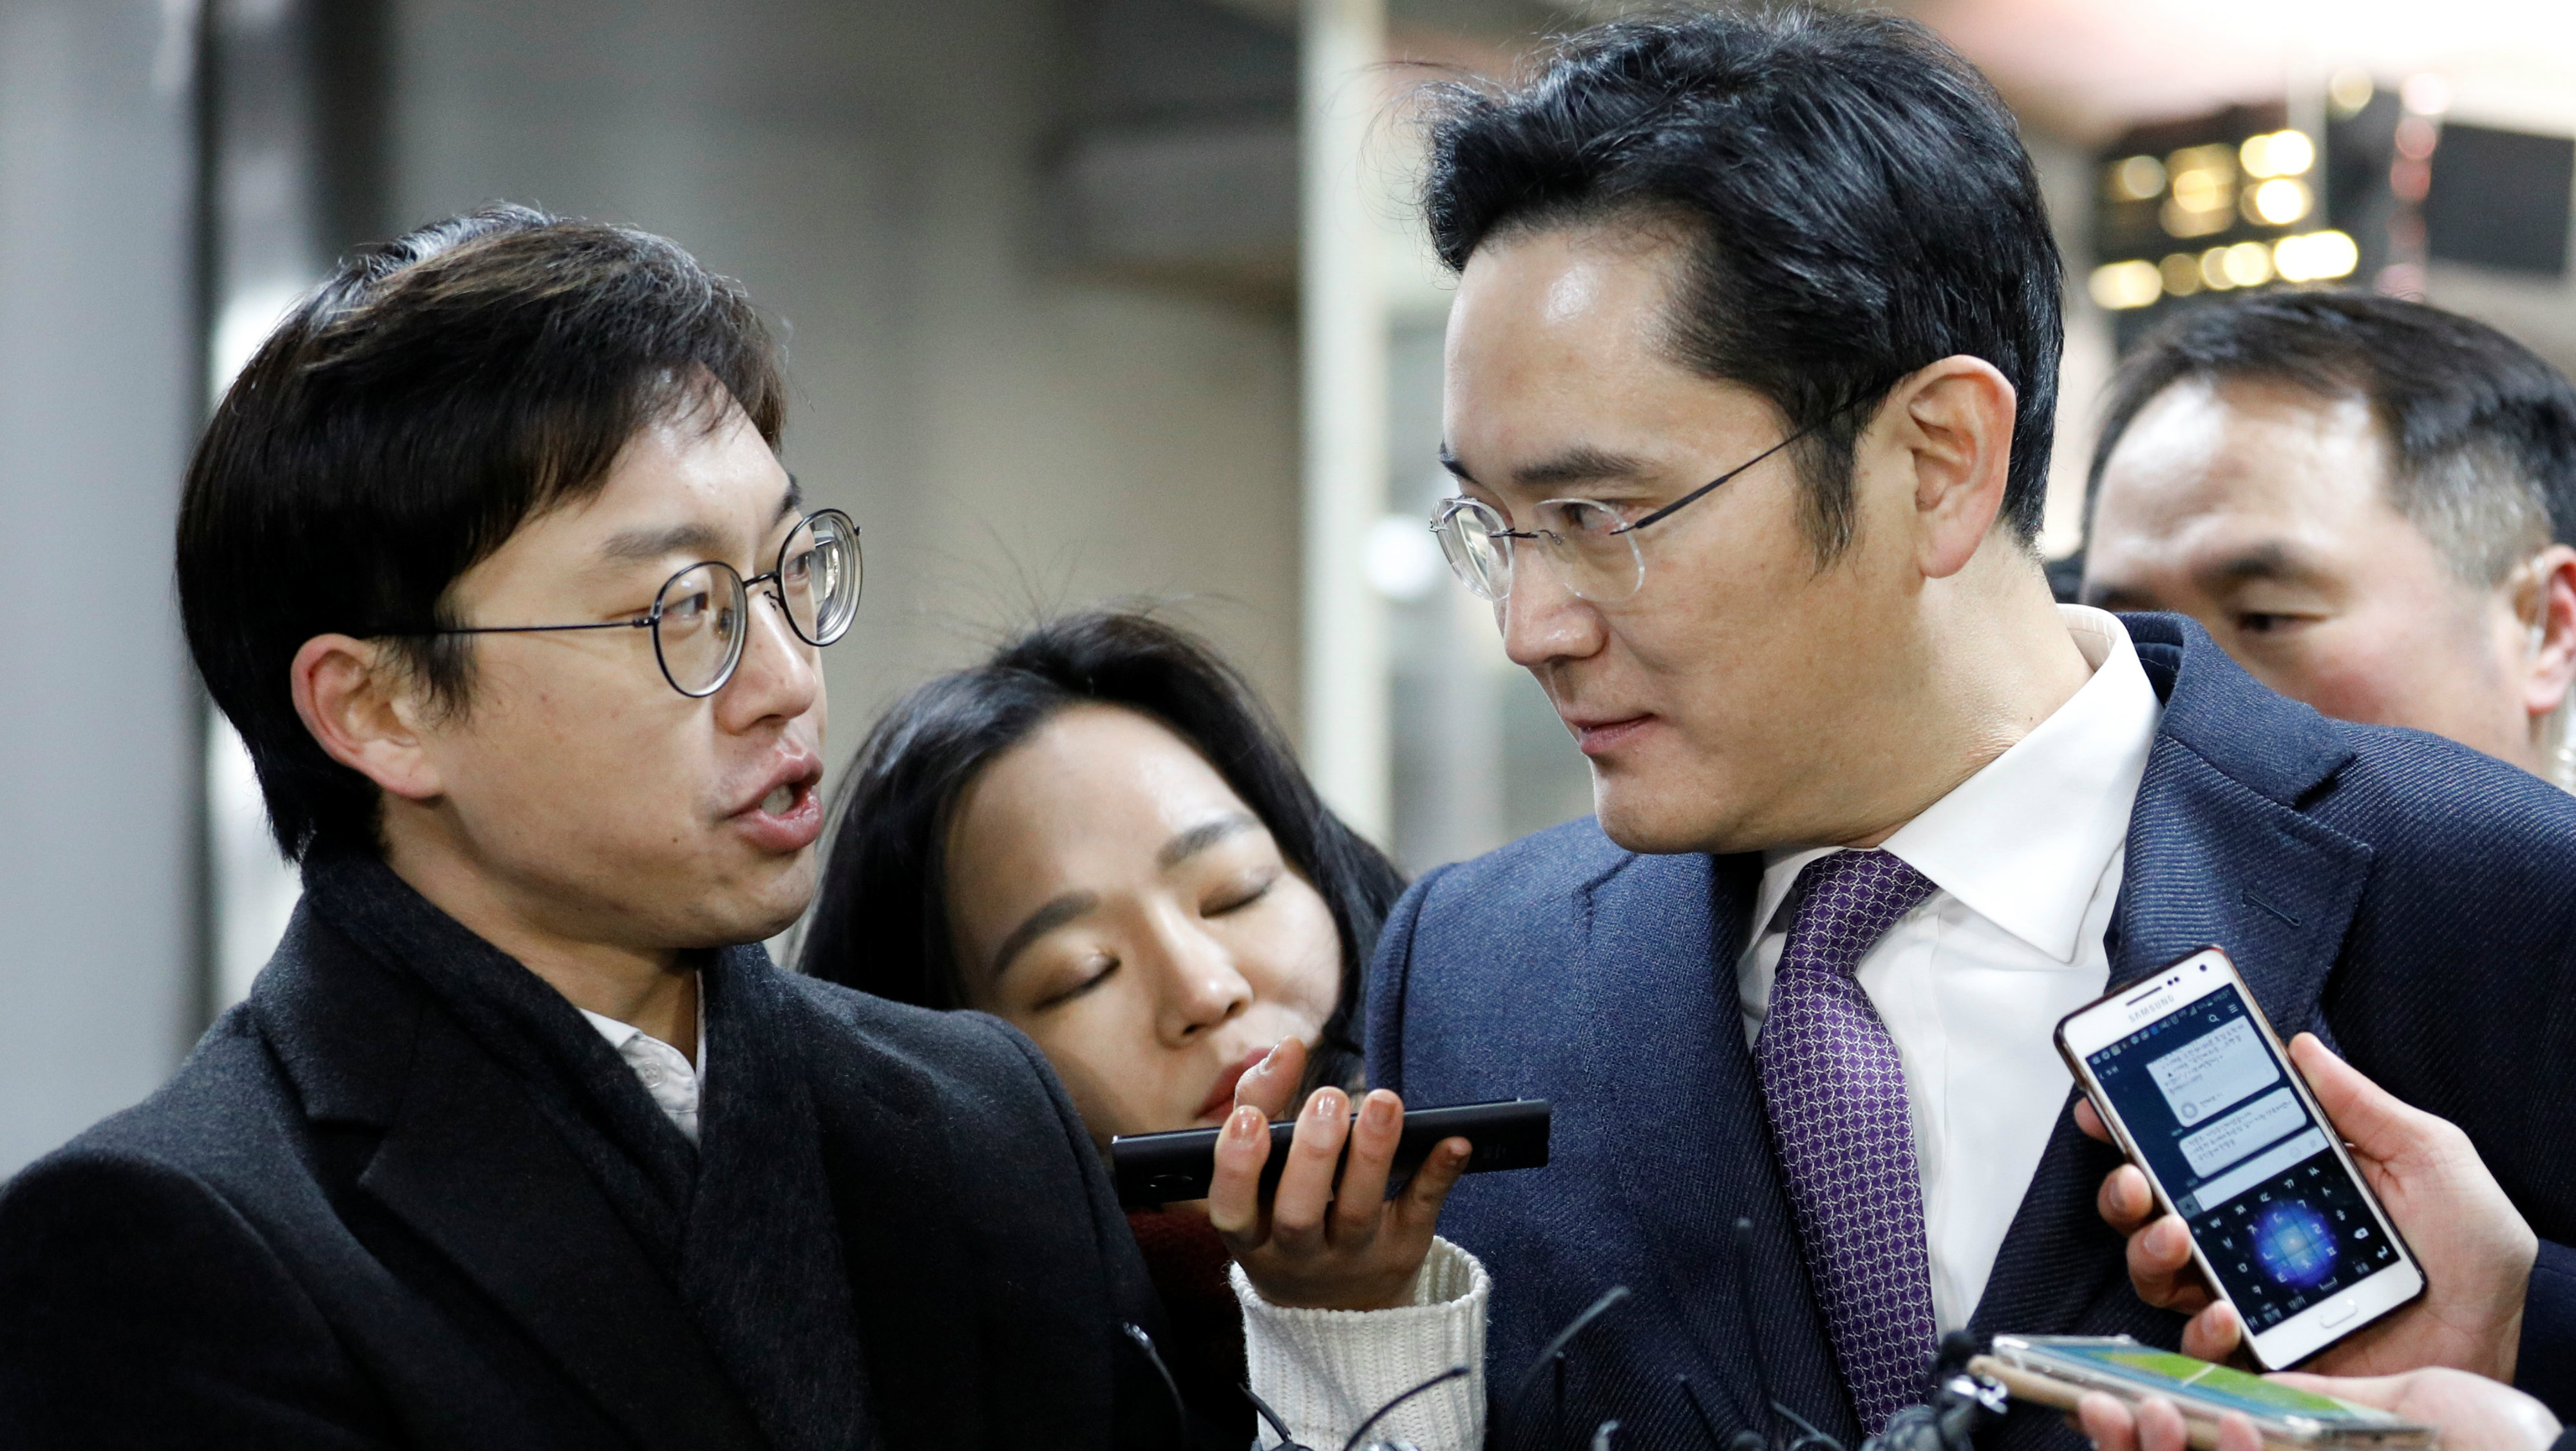 Samsung Group chief, Jay Y. Lee, is surrounded by media as he arrives at the Seoul Central District Court in Seoul, South Korea